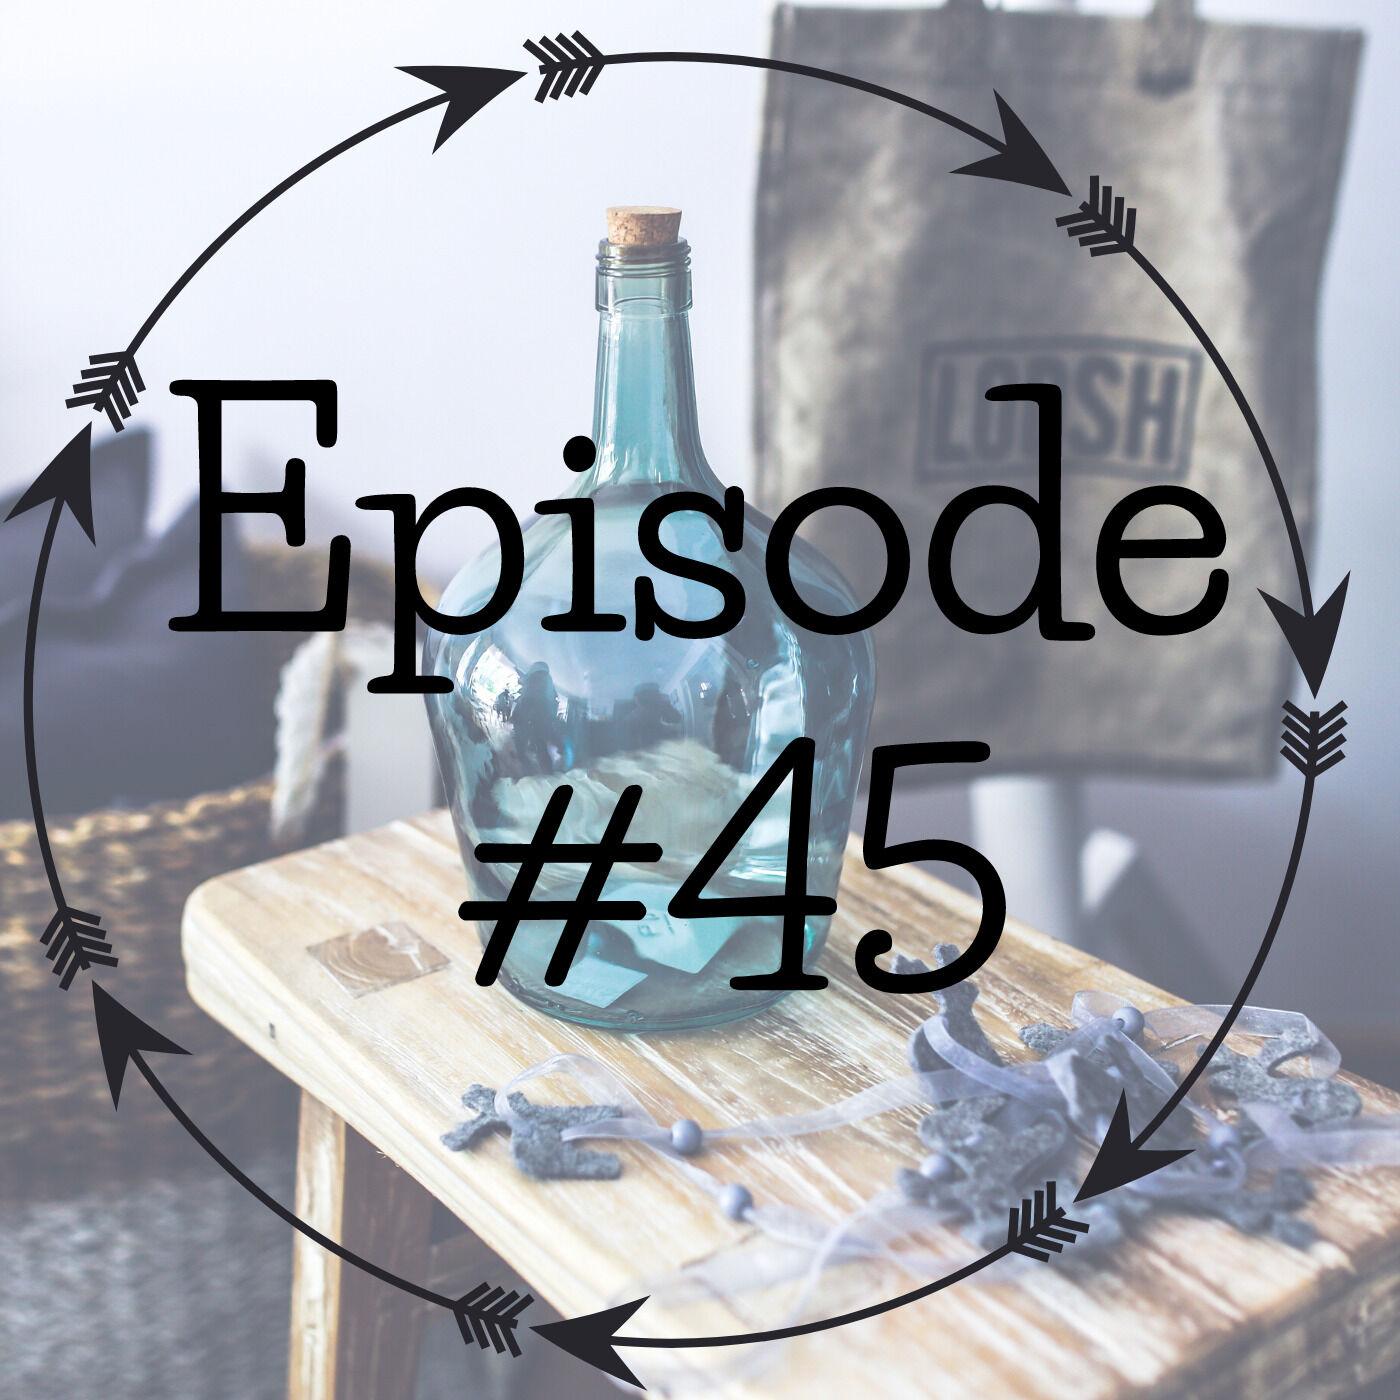 Episode #45: A dilemma about health professionals not introducing themselves and the one birth partner rule